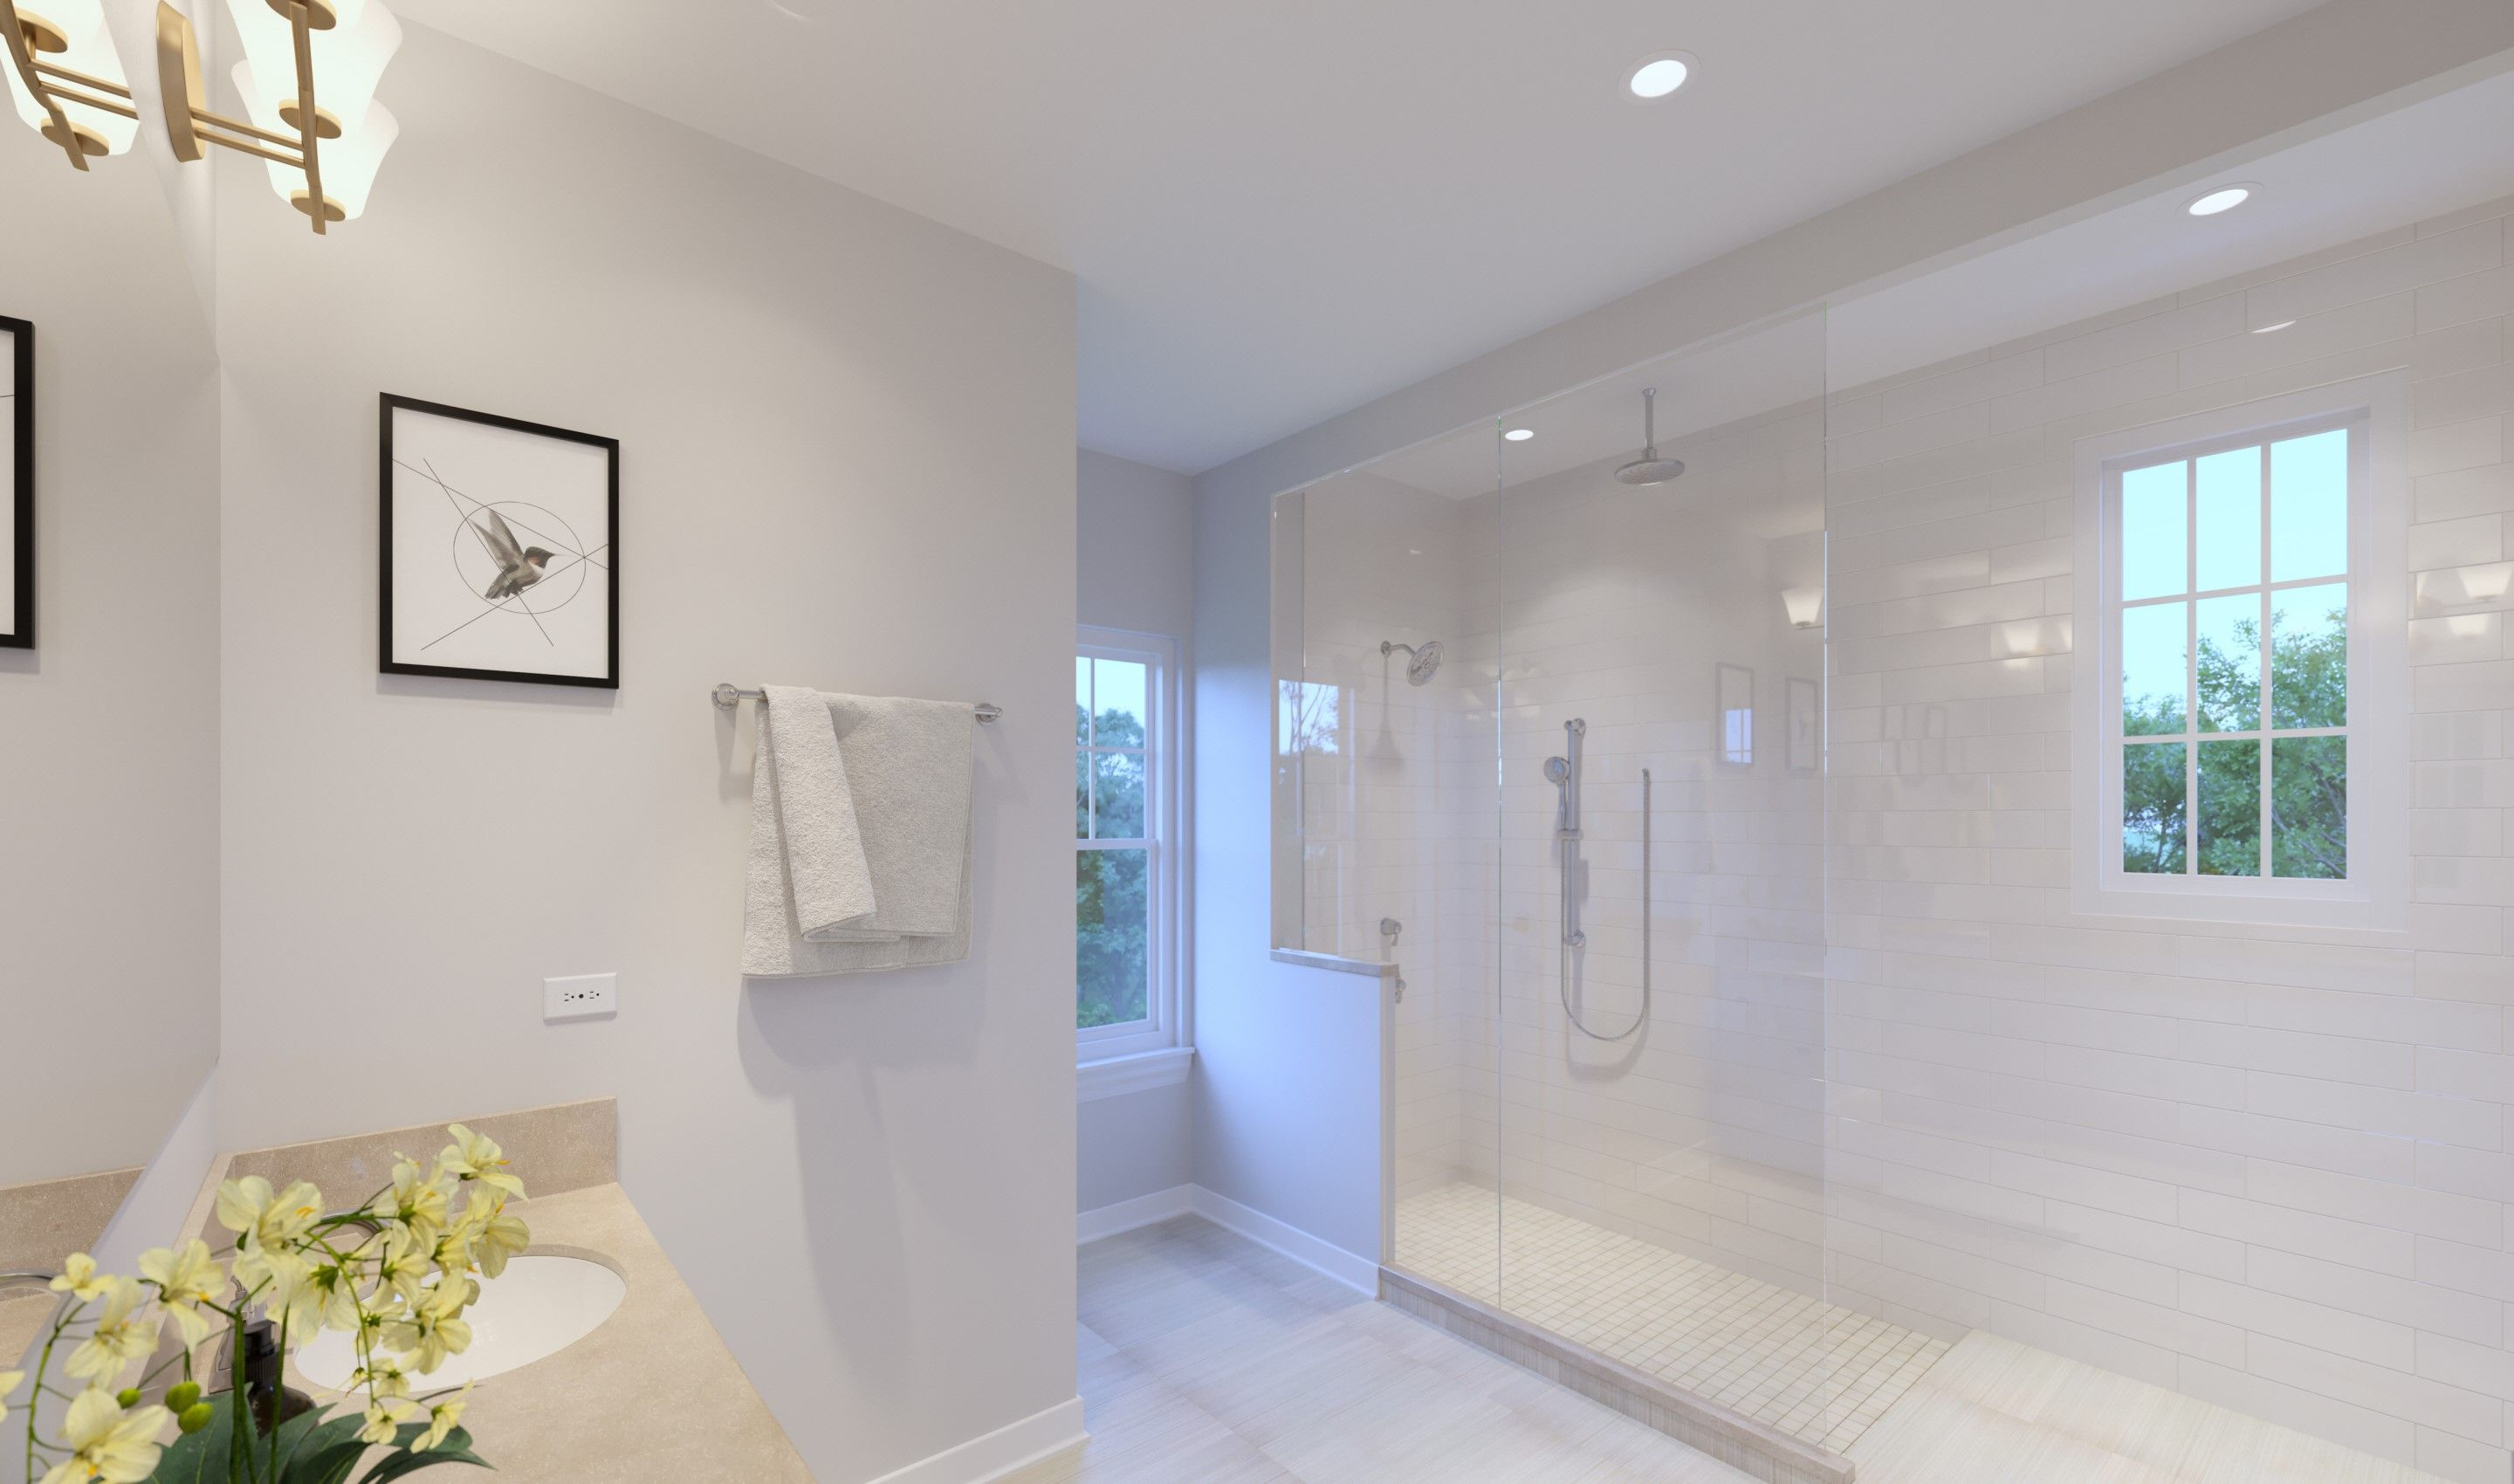 Bathroom featured in the Ruskin By K. Hovnanian® Homes in Chicago, IL